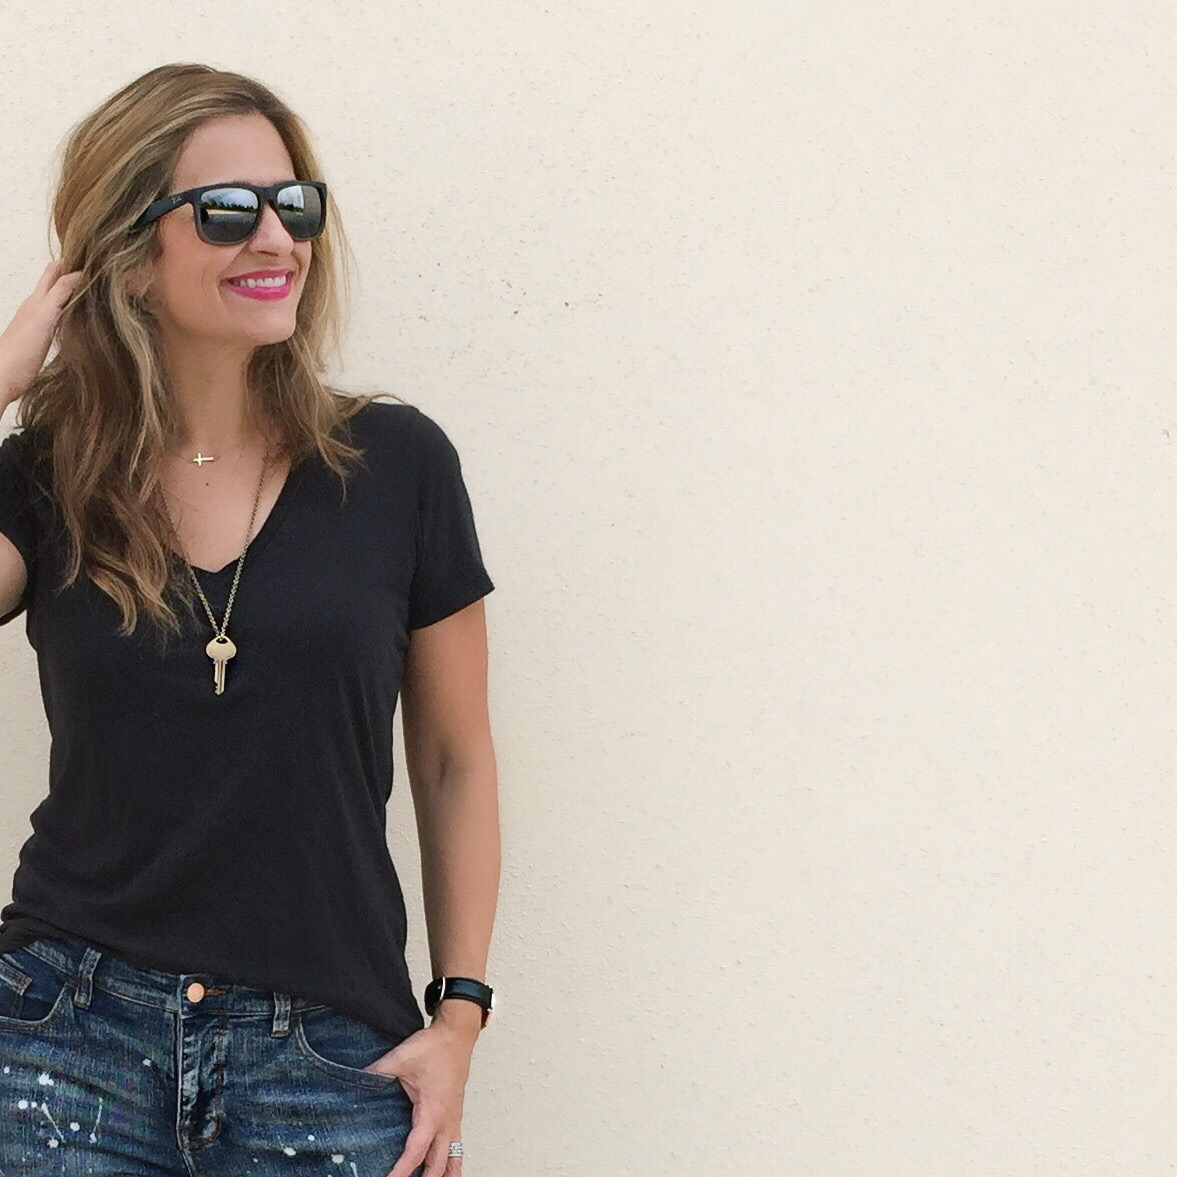 Everlane  black v-neck tee (not too low cut, cotton, great fit) and Jeans from  Target . Necklace:  The Giving Key  Sunglasses:  Ray-Ban